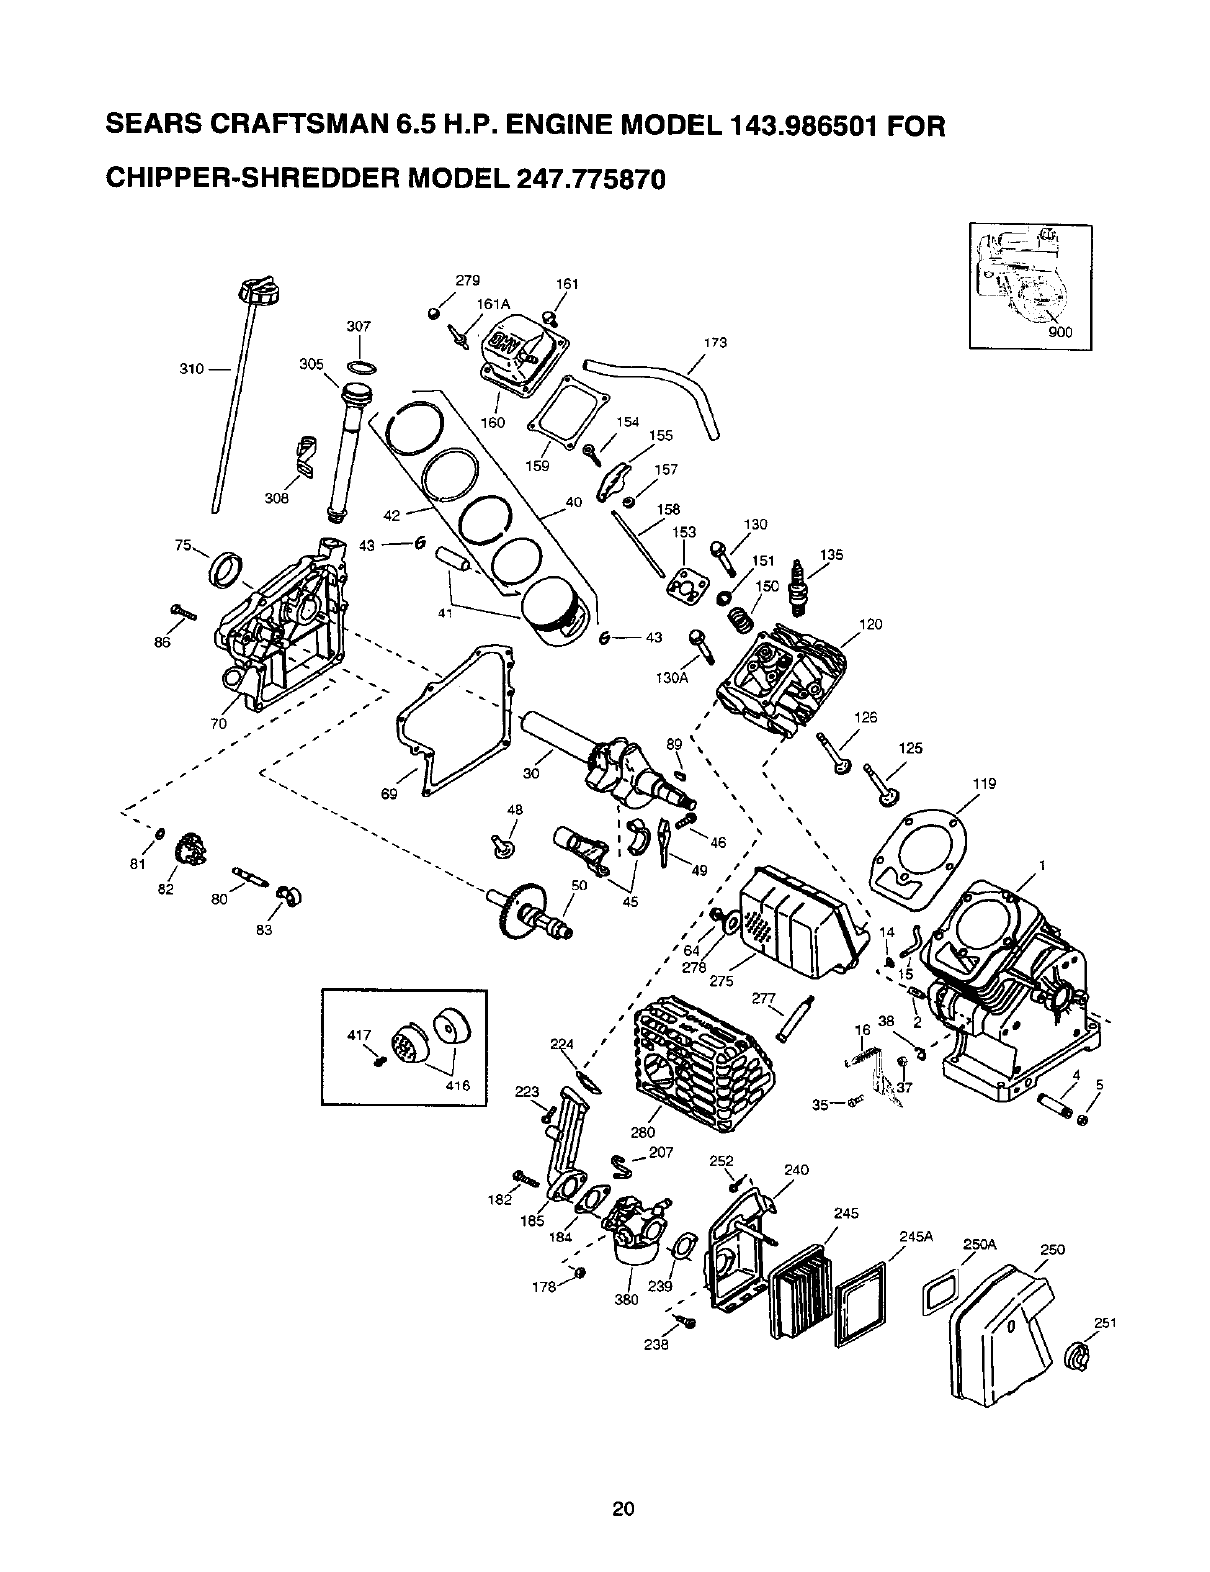 Page 20 of Craftsman Chipper 247.775870 User Guide